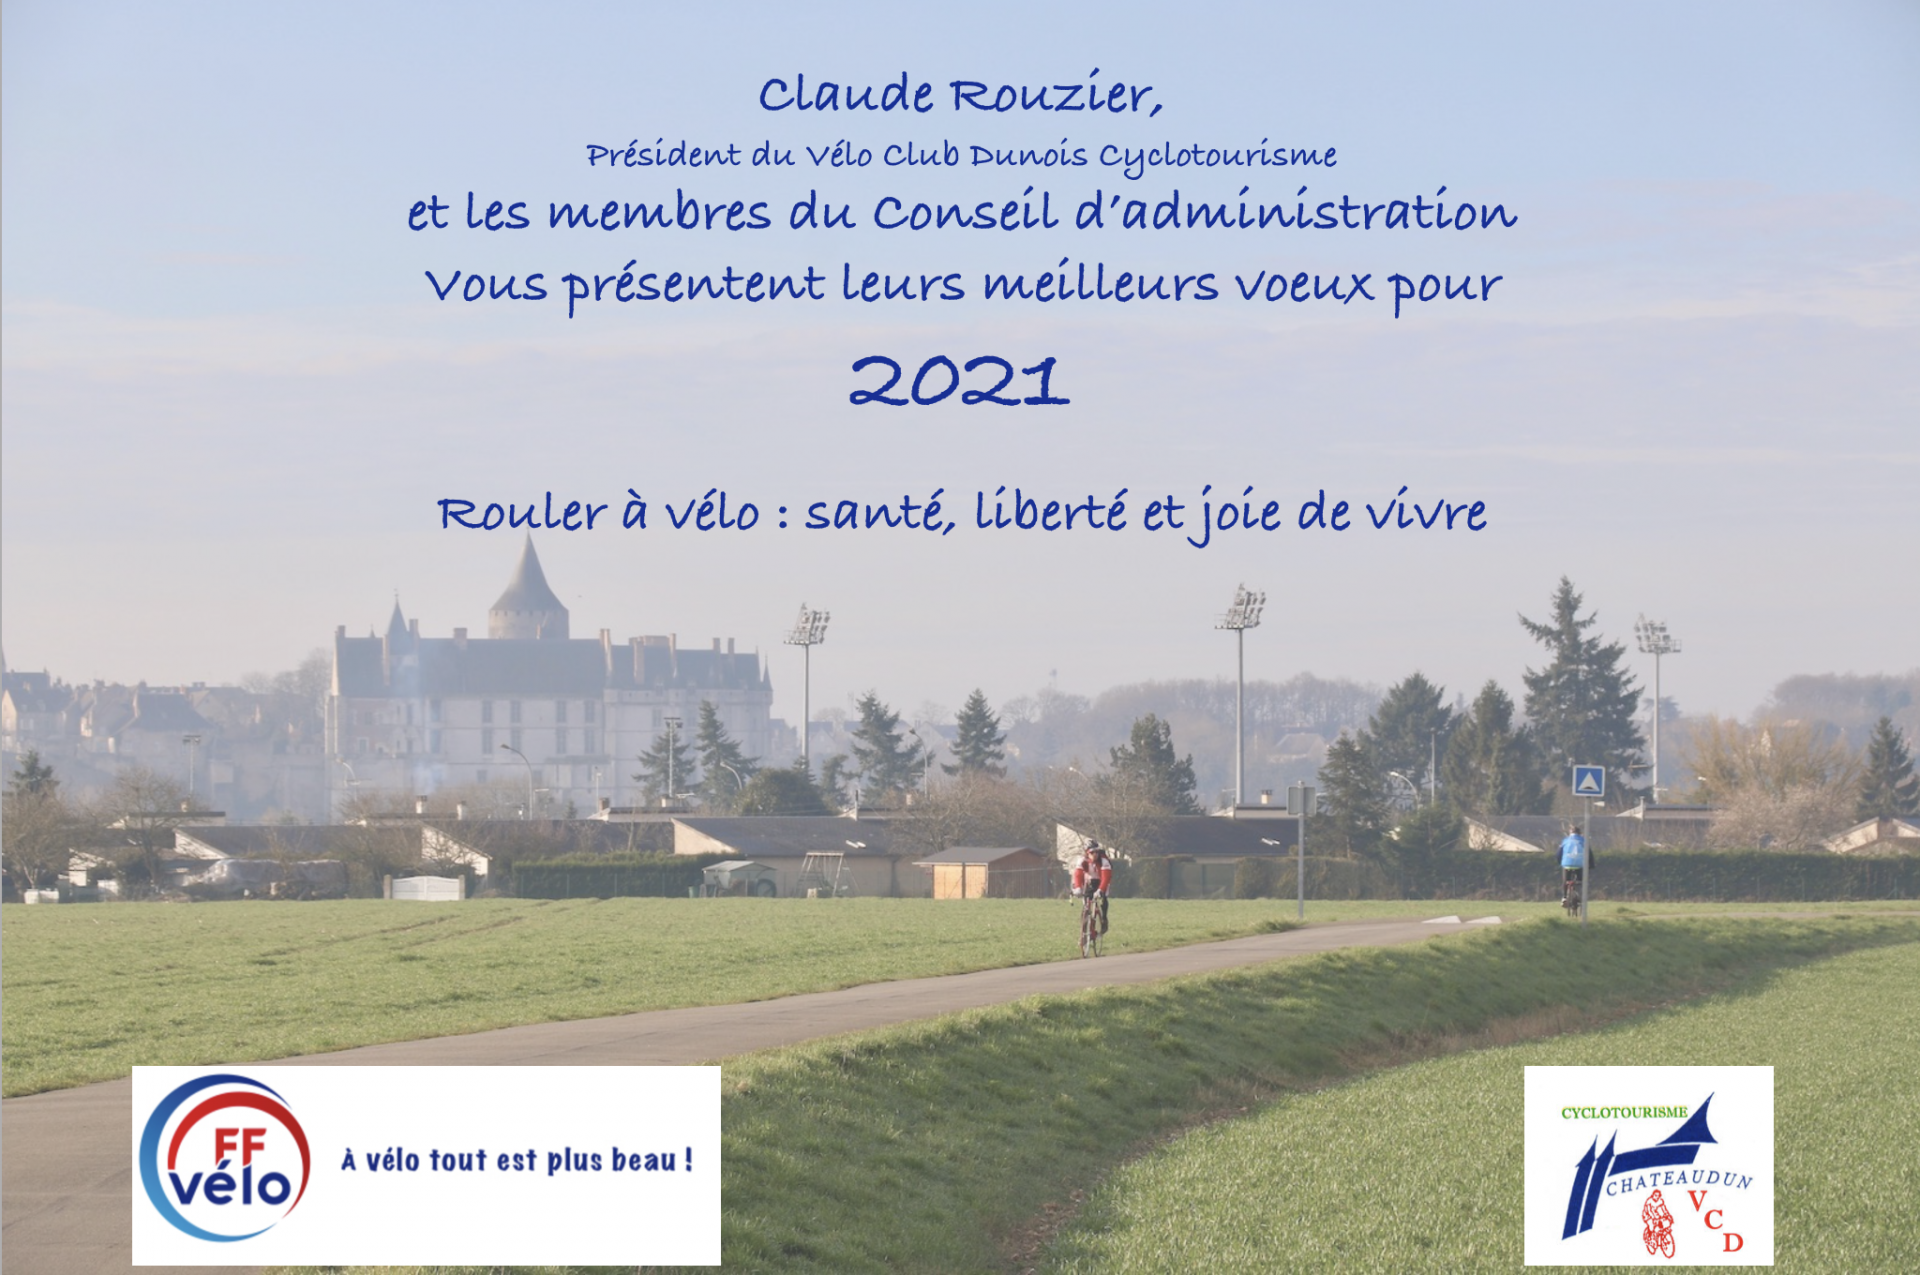 Voeux vcd 2021